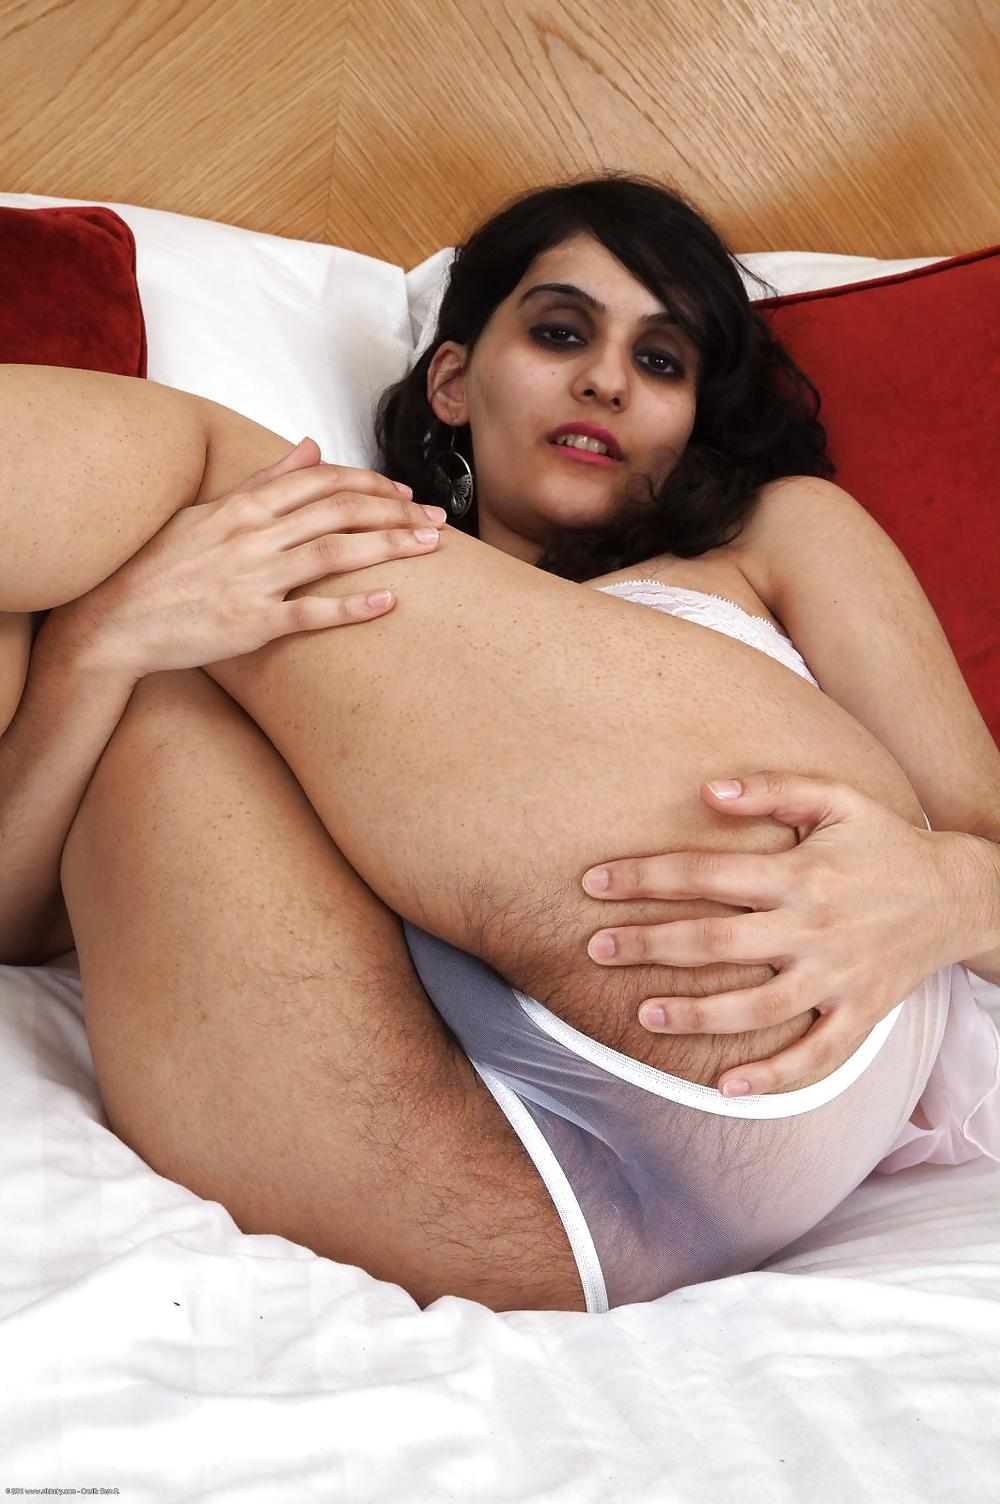 Sex life rani mukherjee hairy cunt nude pornos boobs mature